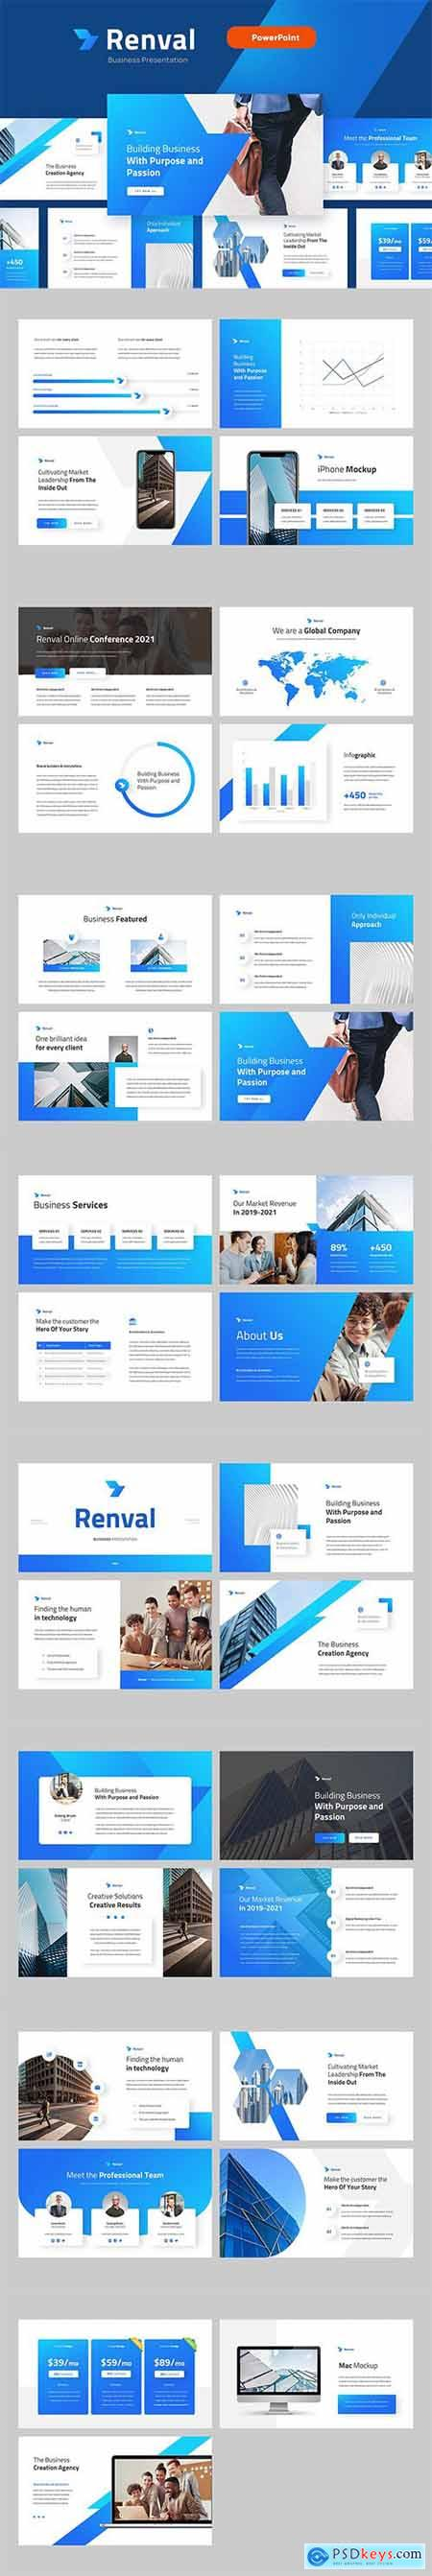 RENVAL - Business Marketing Powerpoint Template